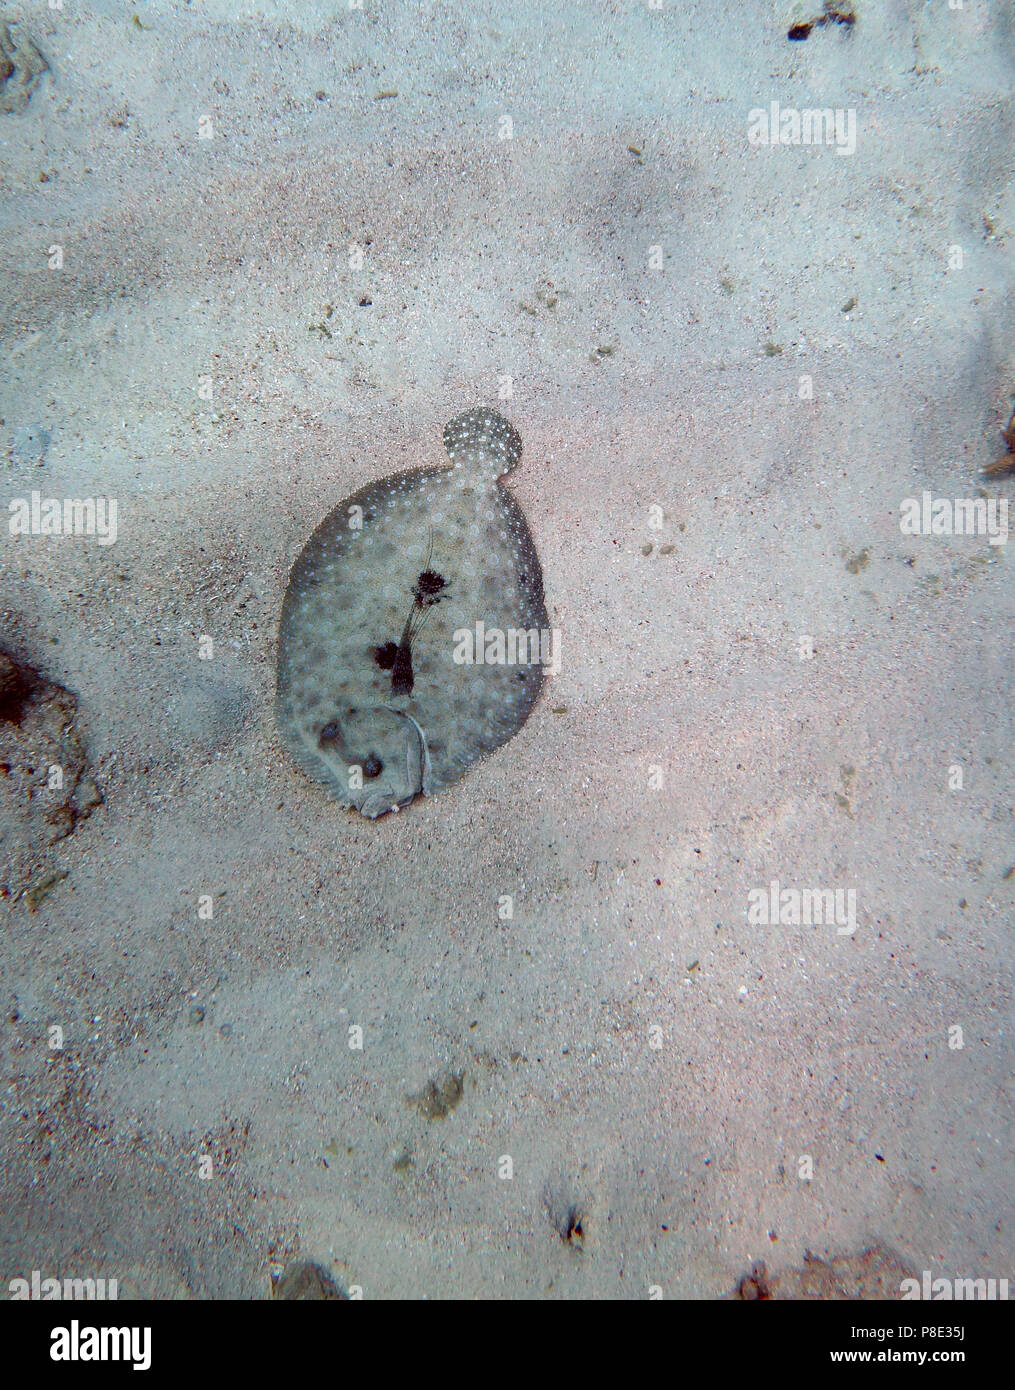 Leopard flounder (Bothus pantherinus) that is not very well camouflaged on sandy bottom, Saxon Reef, Great Barrier Reef, Queensland, Australia - Stock Image